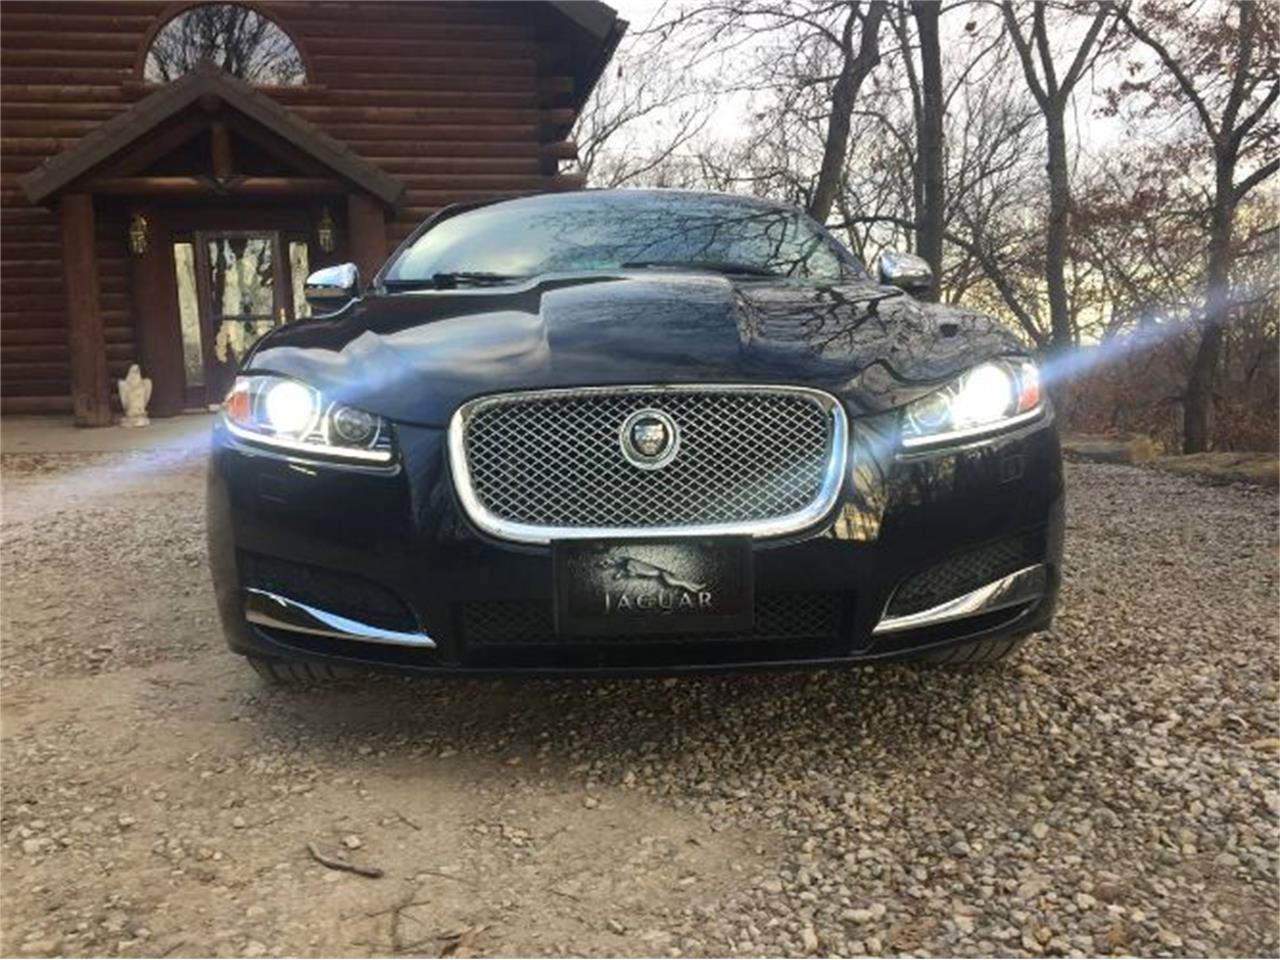 2012 Jaguar XF (CC-1259922) for sale in Cadillac, Michigan